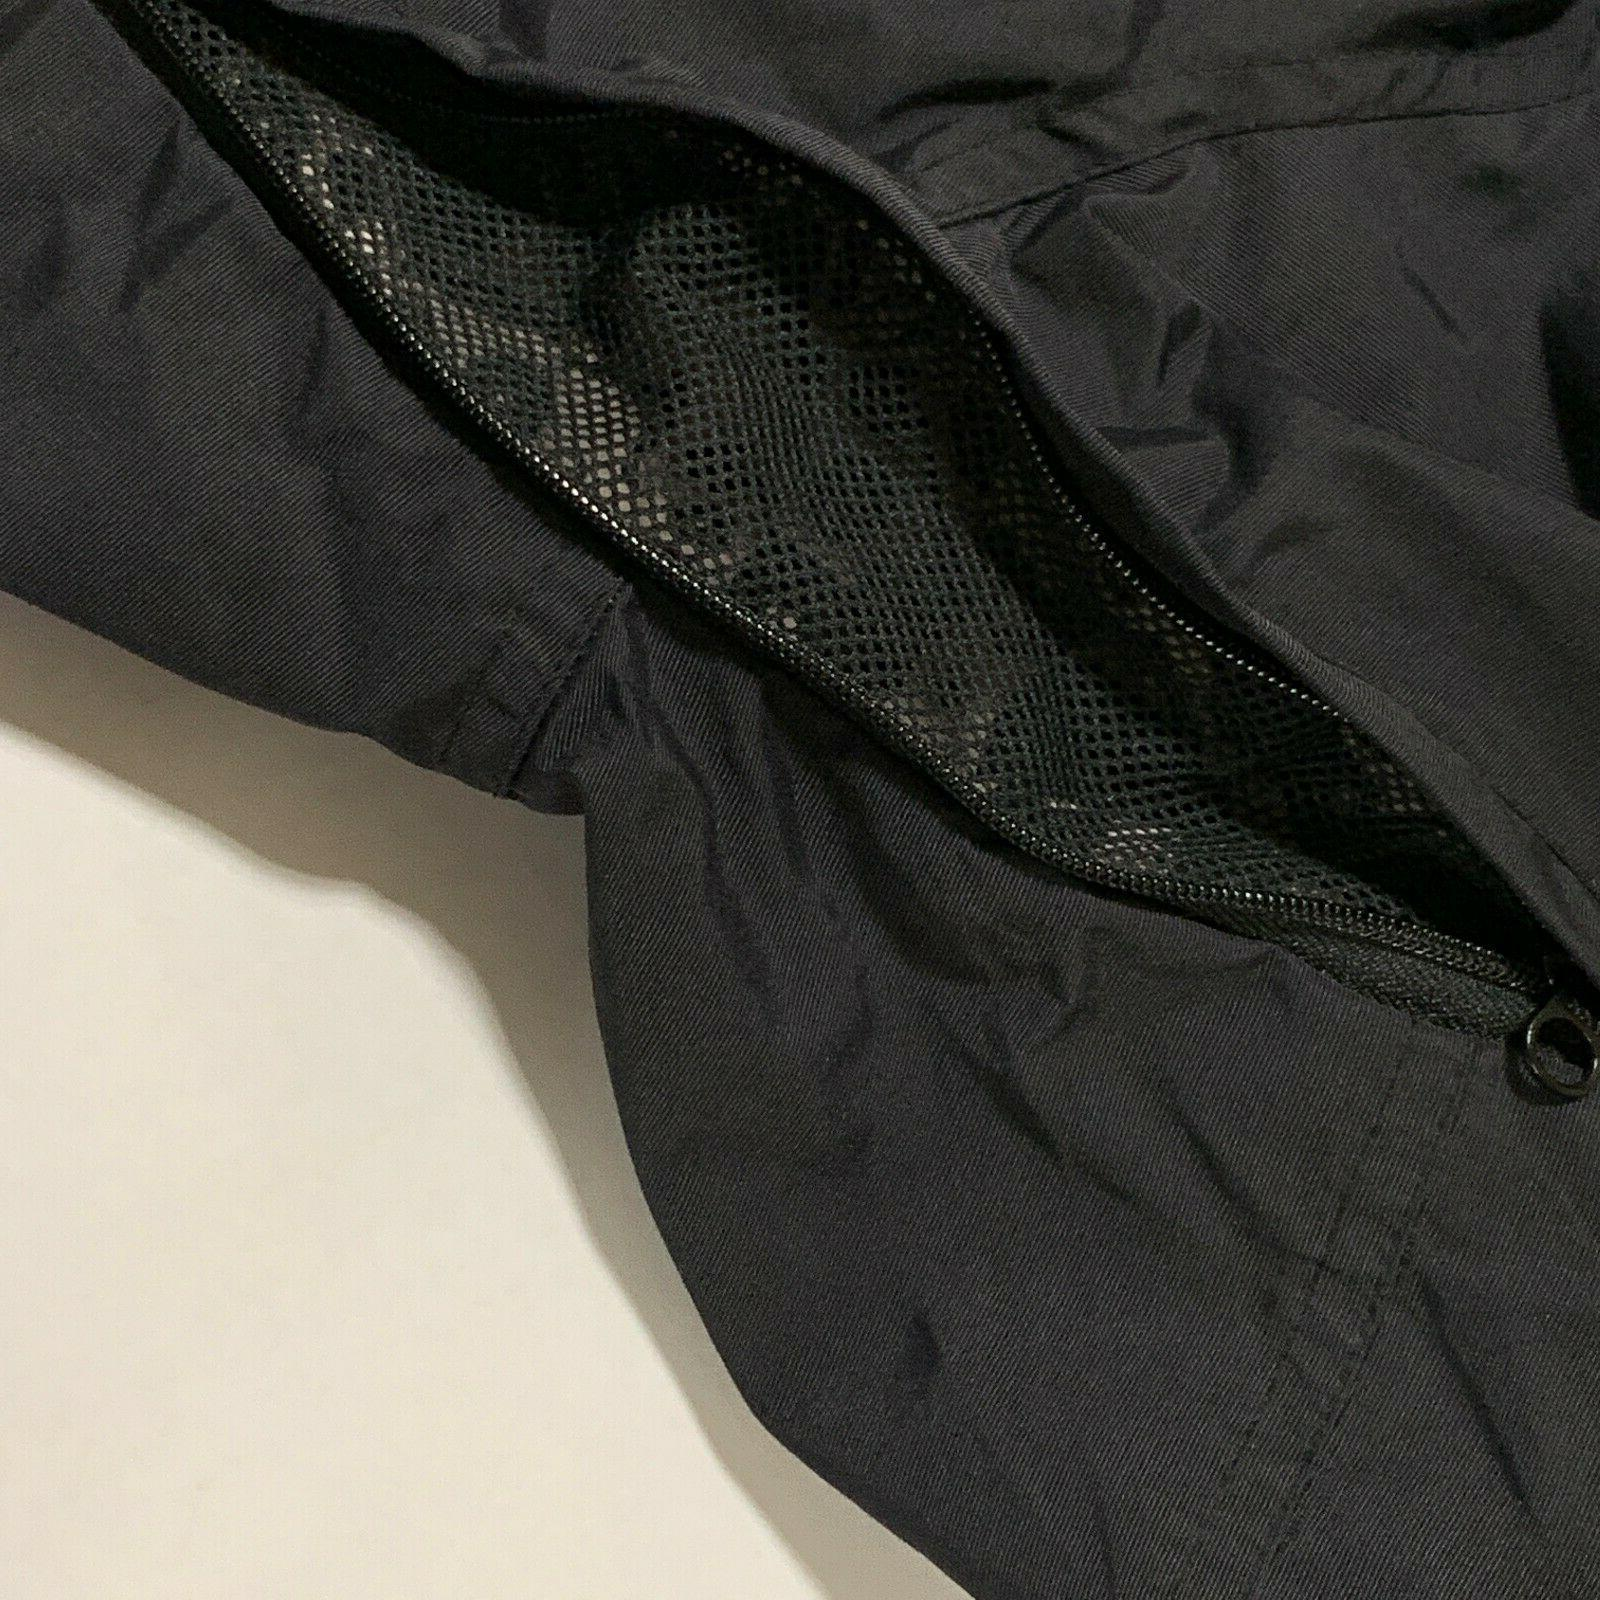 Swatch Revolution Hooded Vented Arms Rare